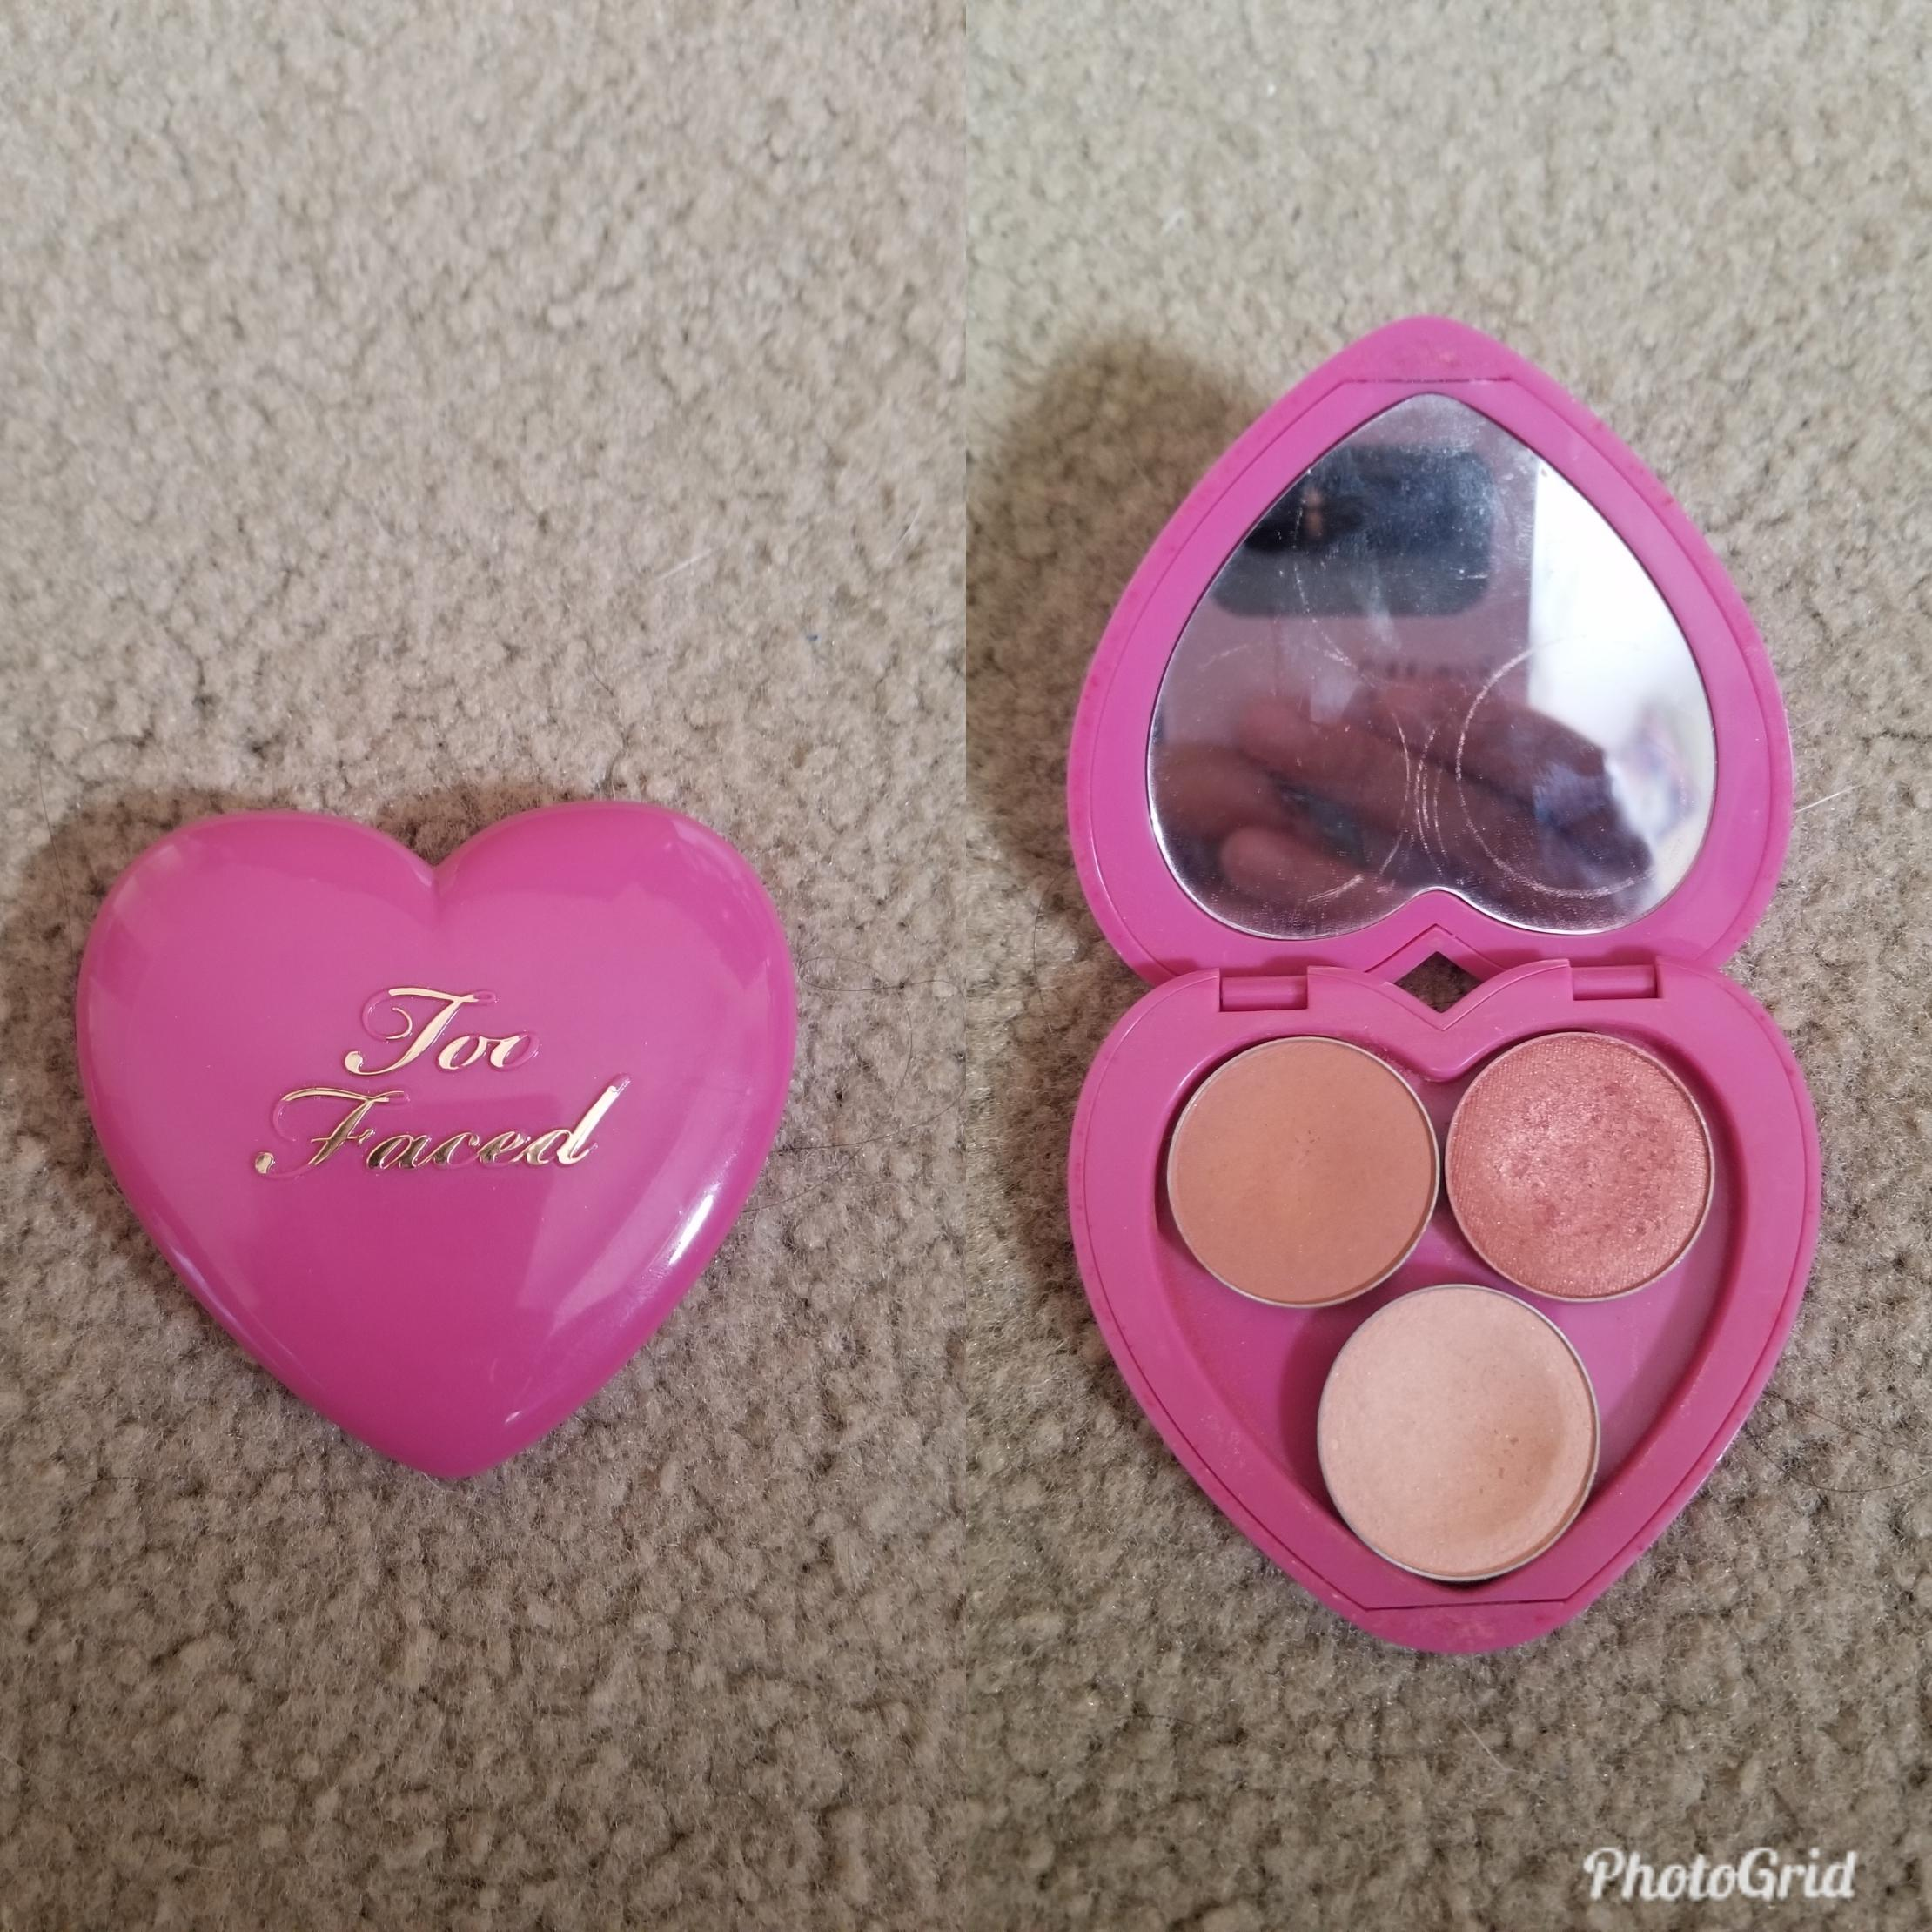 Compact Bad My Blush Went Bad And I Didn T Want To Throw Away The Compact